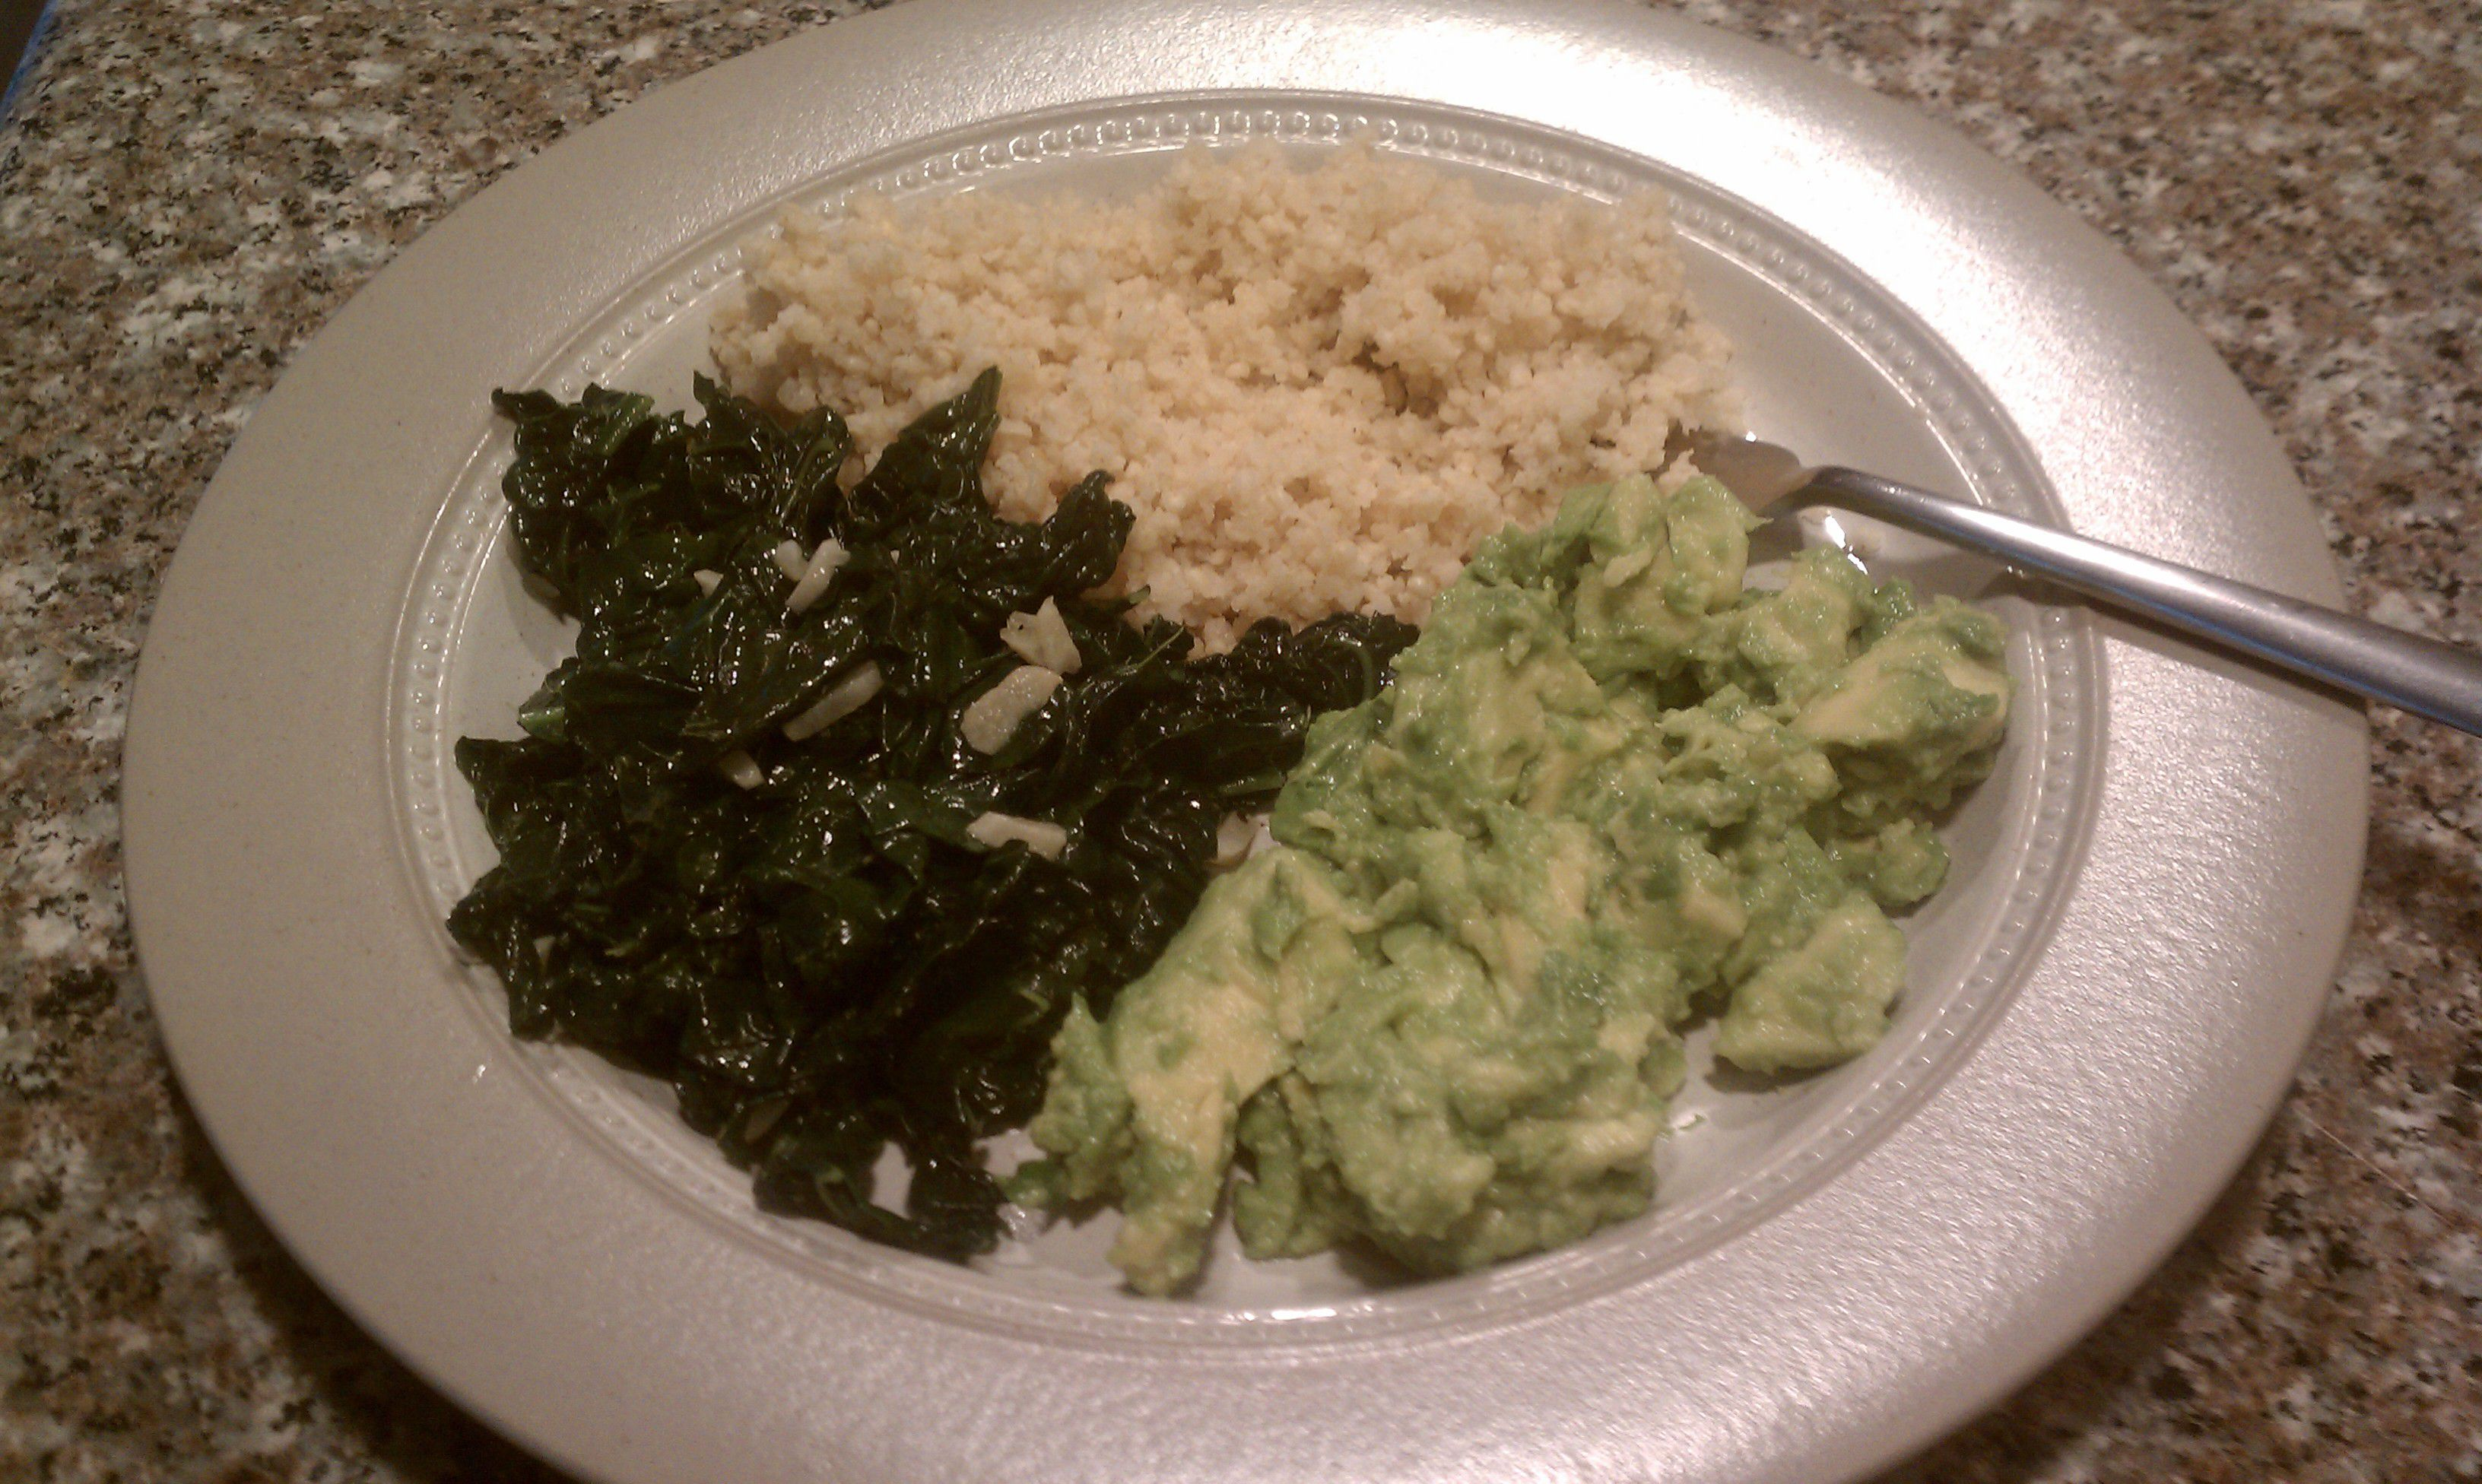 Avocado Mash With Quinoa and Sauteed Greens